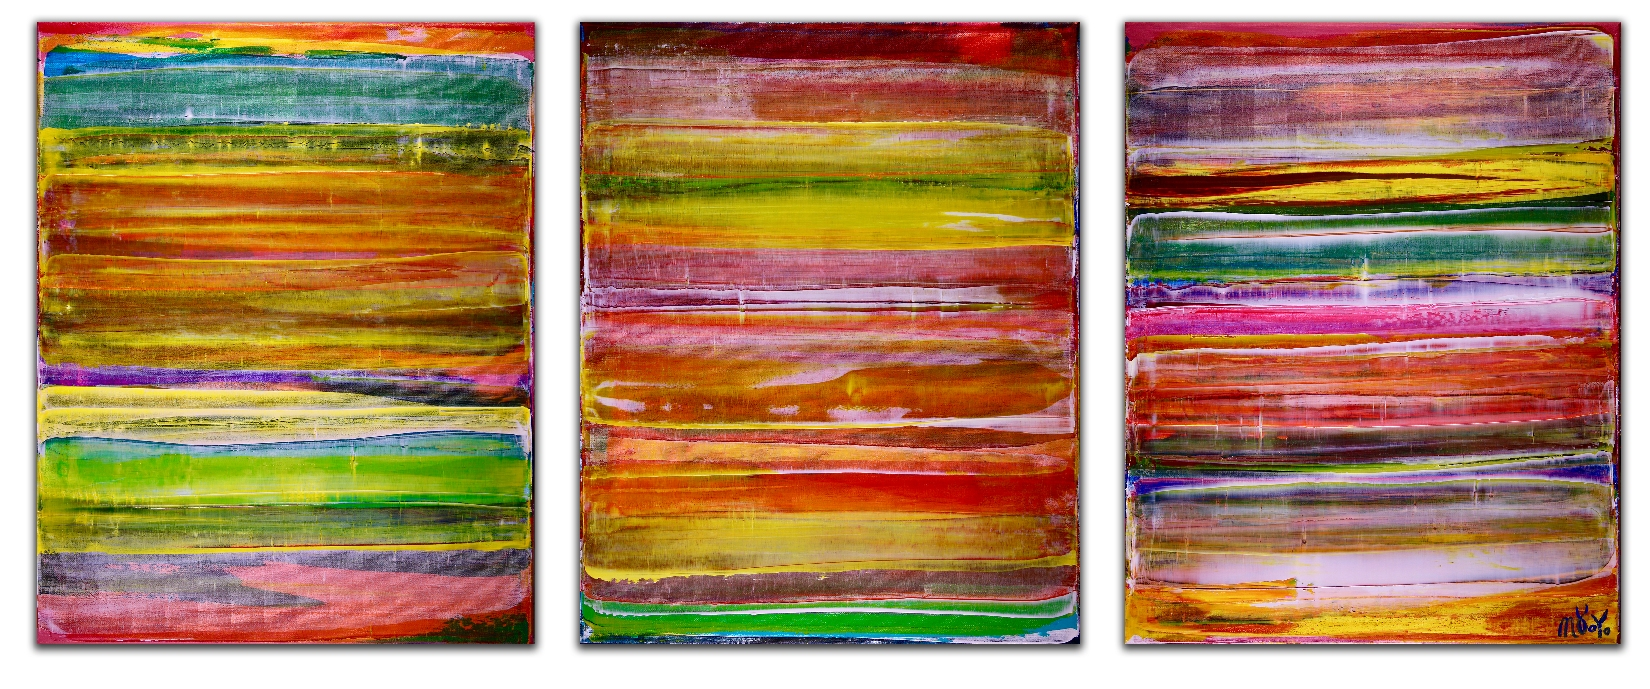 Color revival in Los Angeles 3 by Nestor Toro (2018) Abstract Triptych Acrylic painting by Nestor Toro